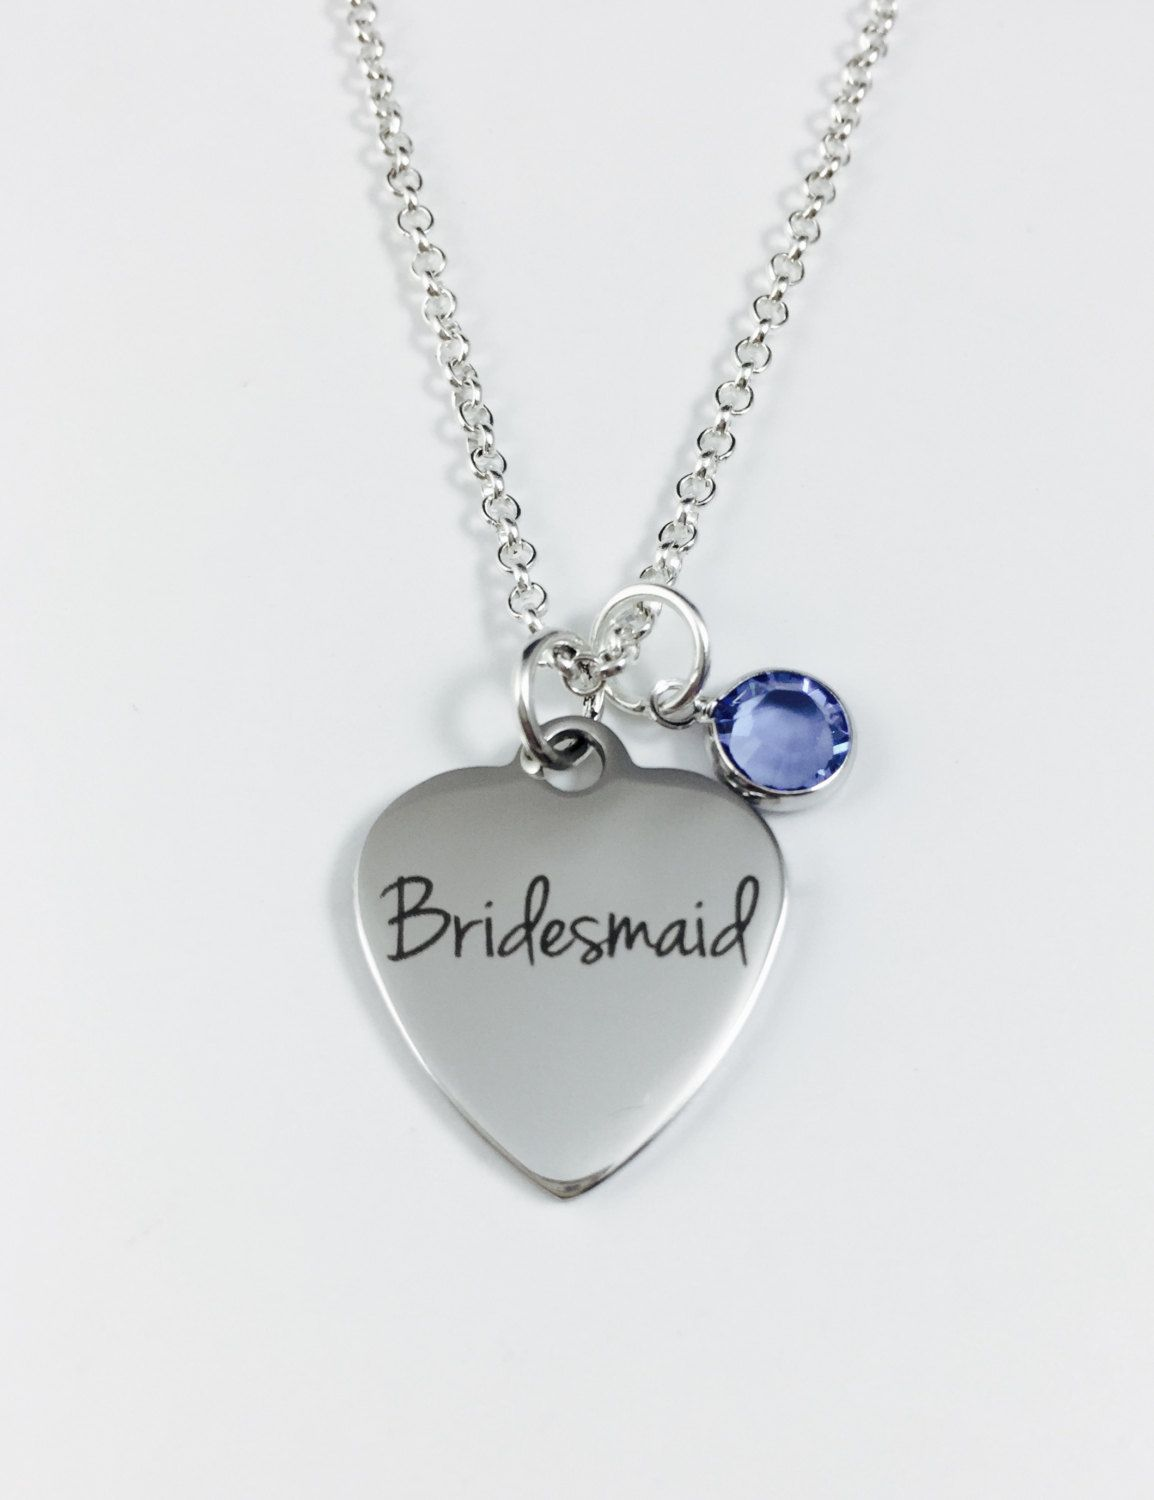 Bridesmaid heart necklace with swarovski crystal birthstone laser bridesmaid heart necklace with swarovski crystal birthstone laser engraved pendant stainless steel pendant aloadofball Gallery